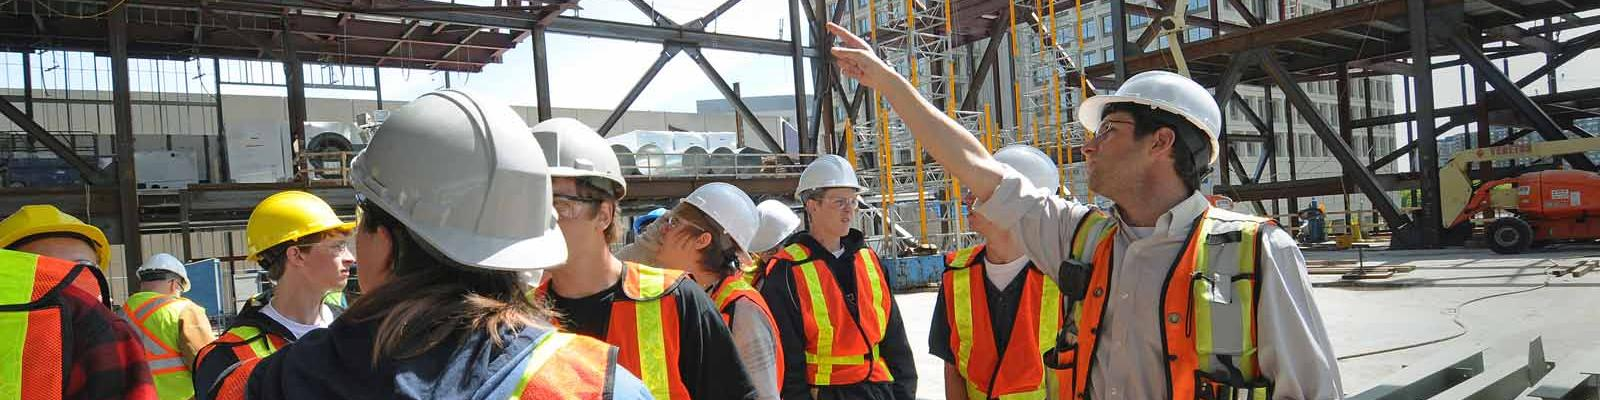 Students get a tour of a construction site